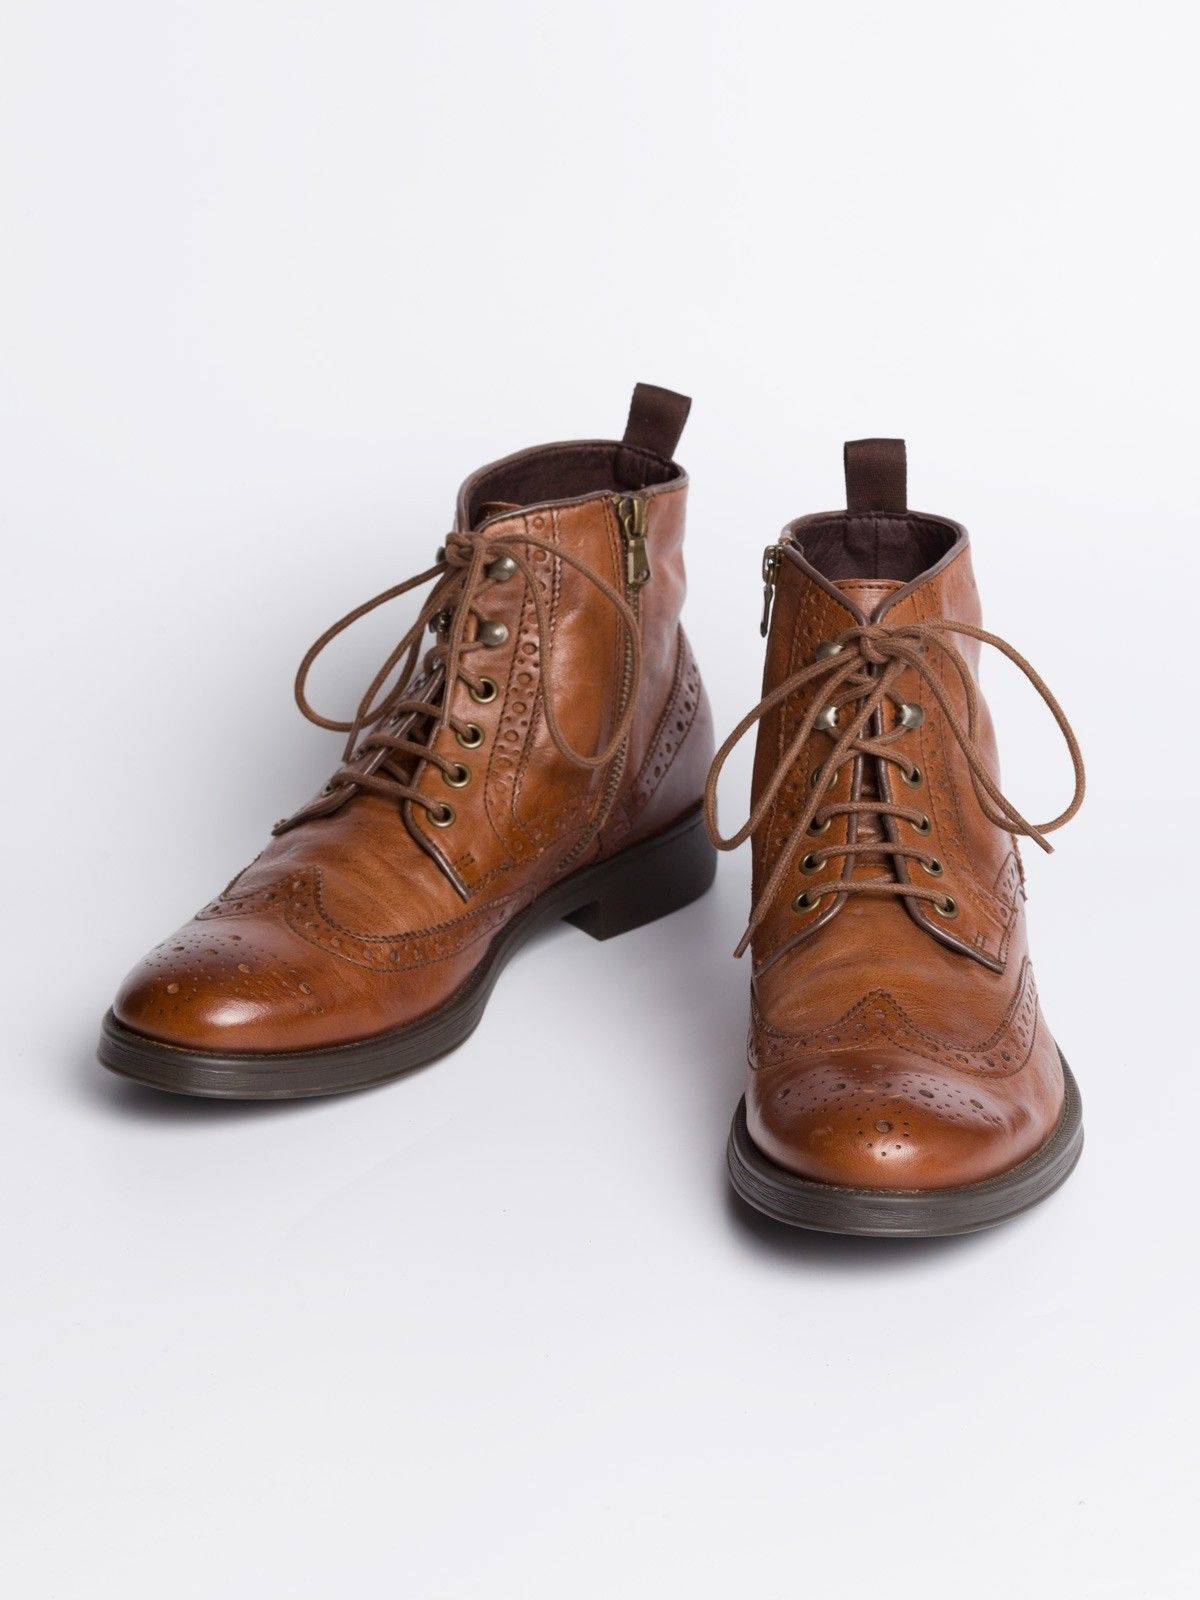 Geox Leather Brogue Boots A modern hybrid from the